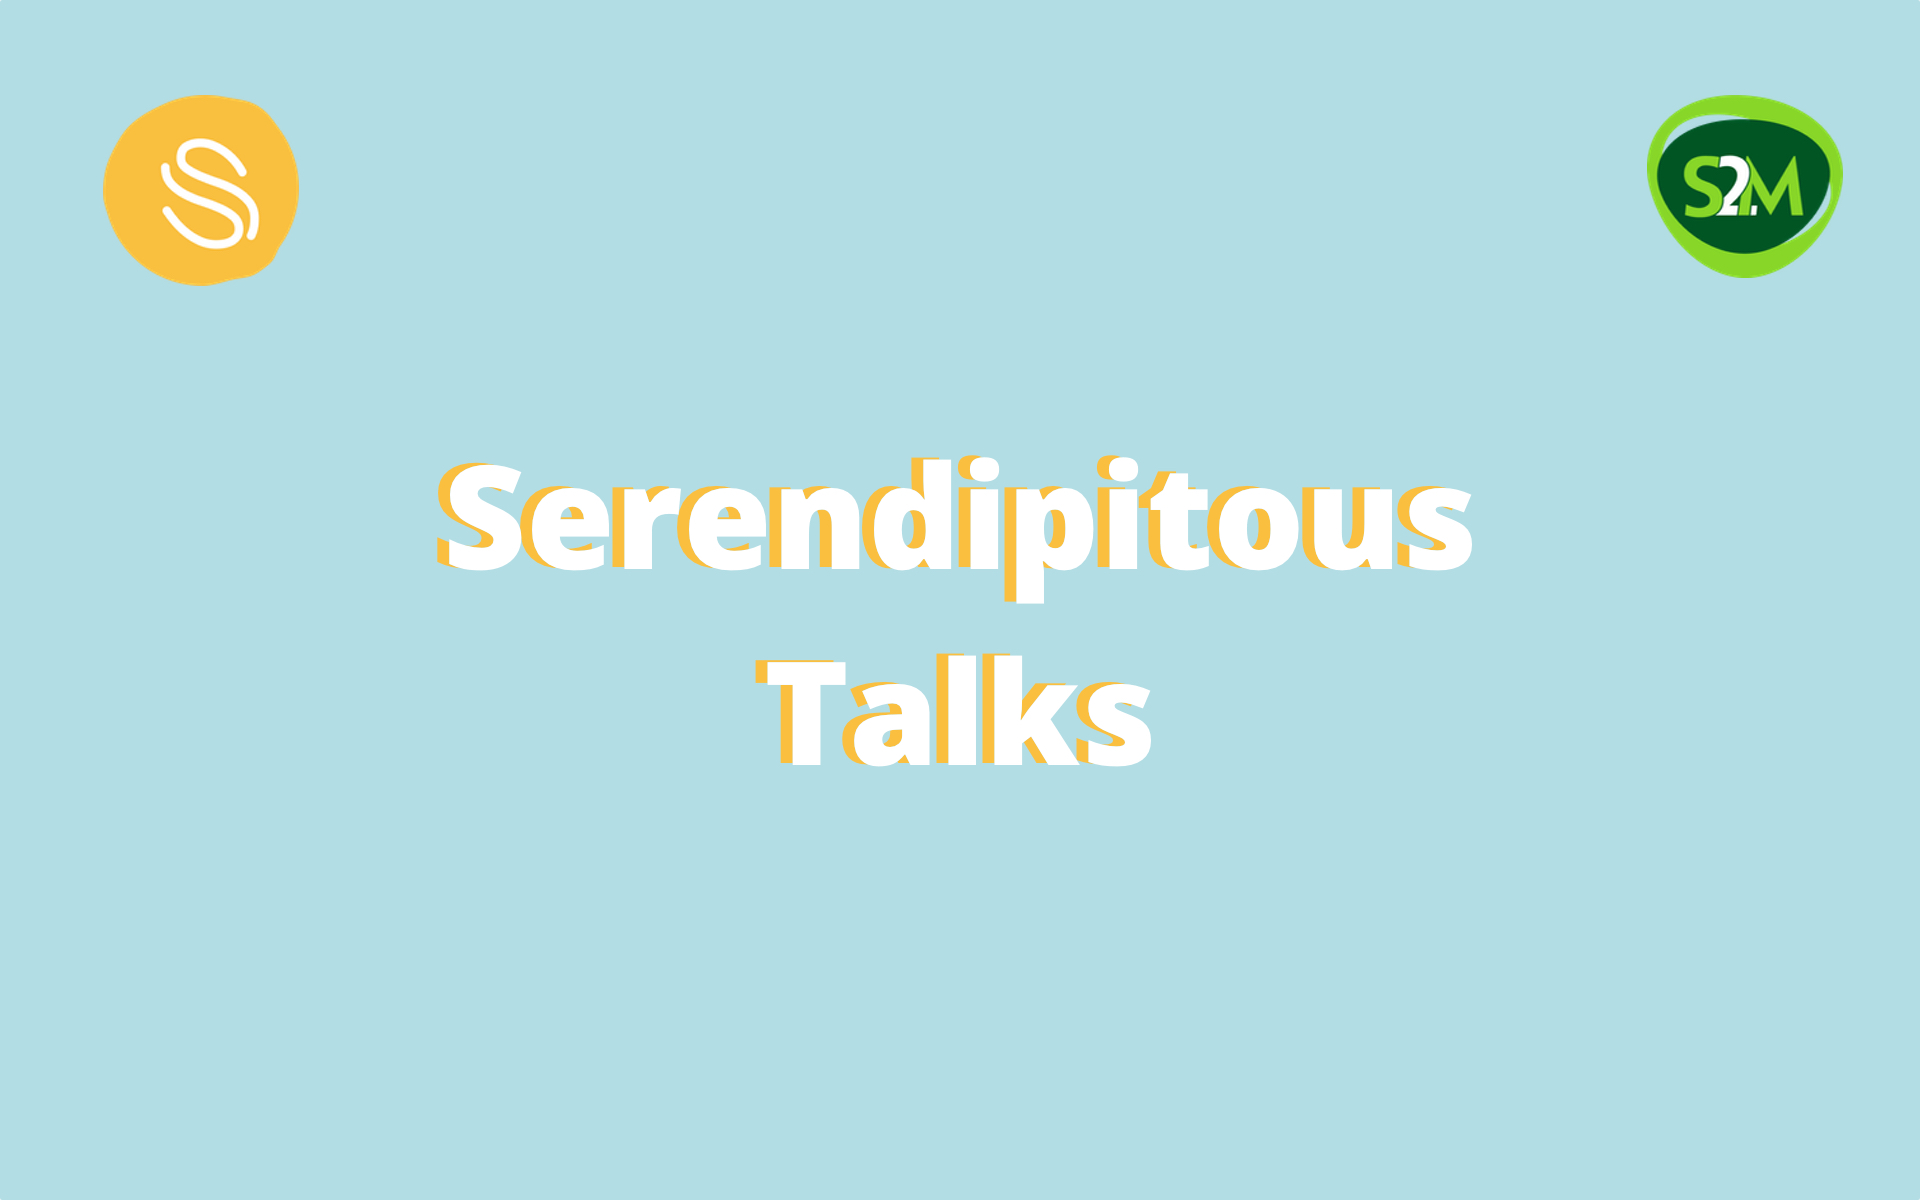 S2M Presents Serendipitous Talks